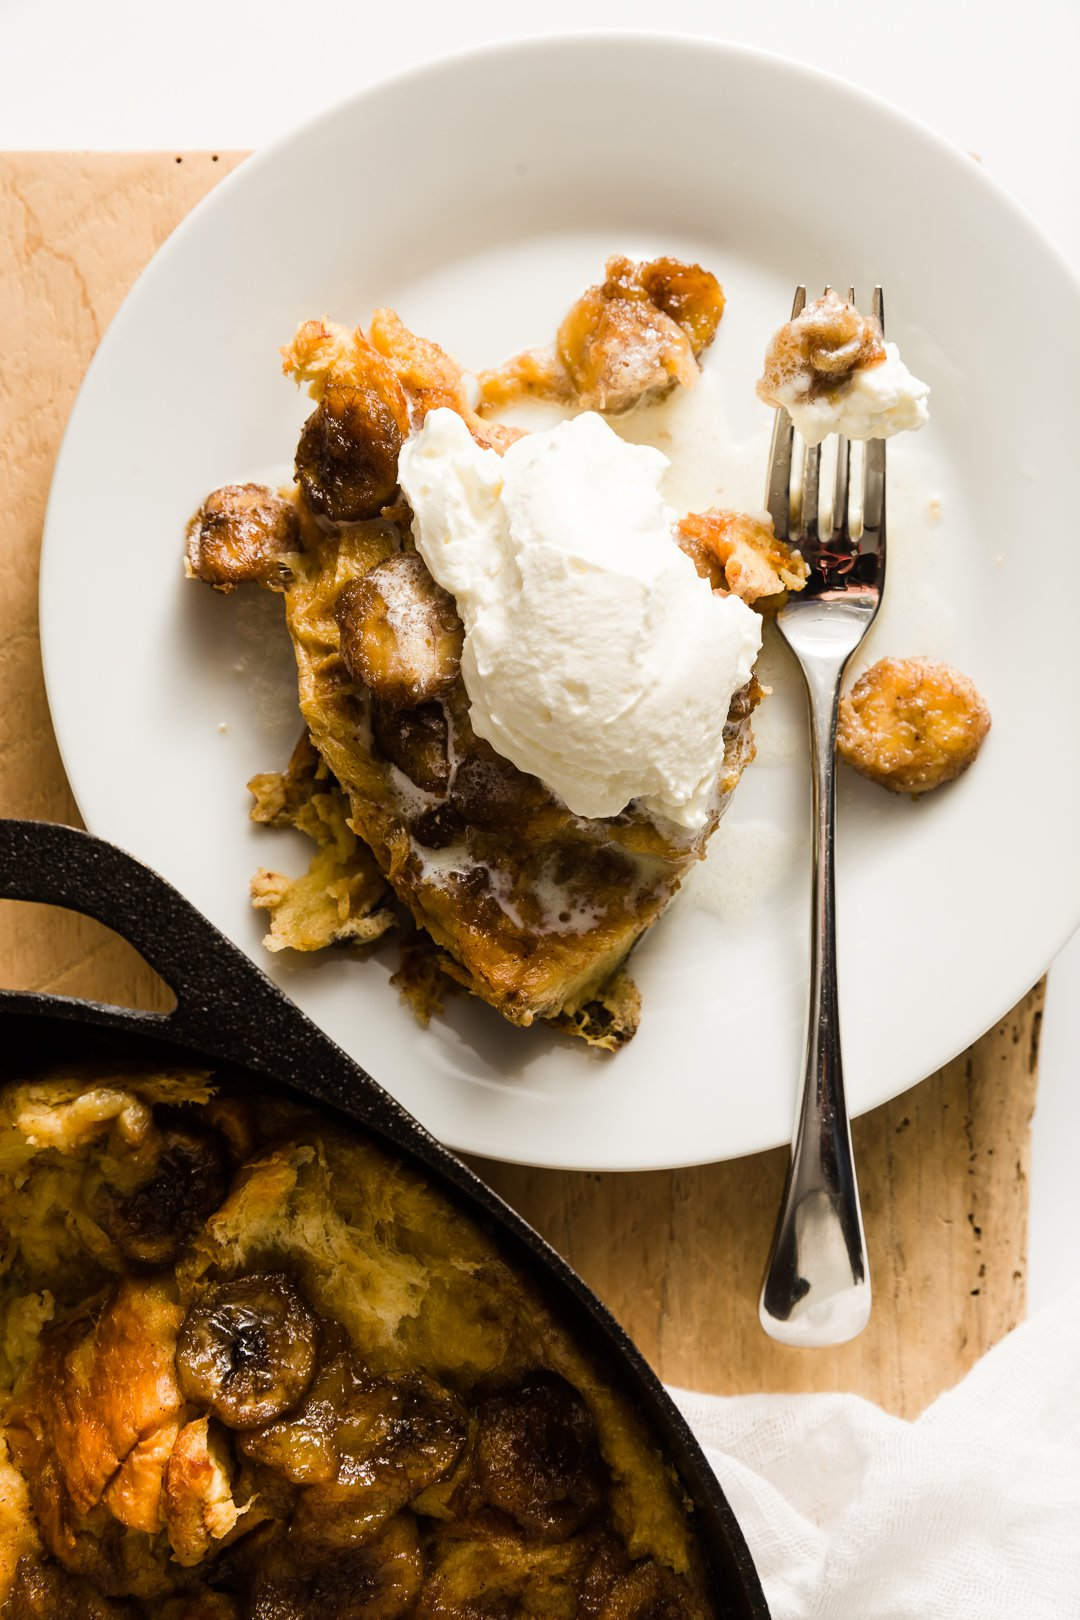 bananas foster french toast on plate with some whipped cream